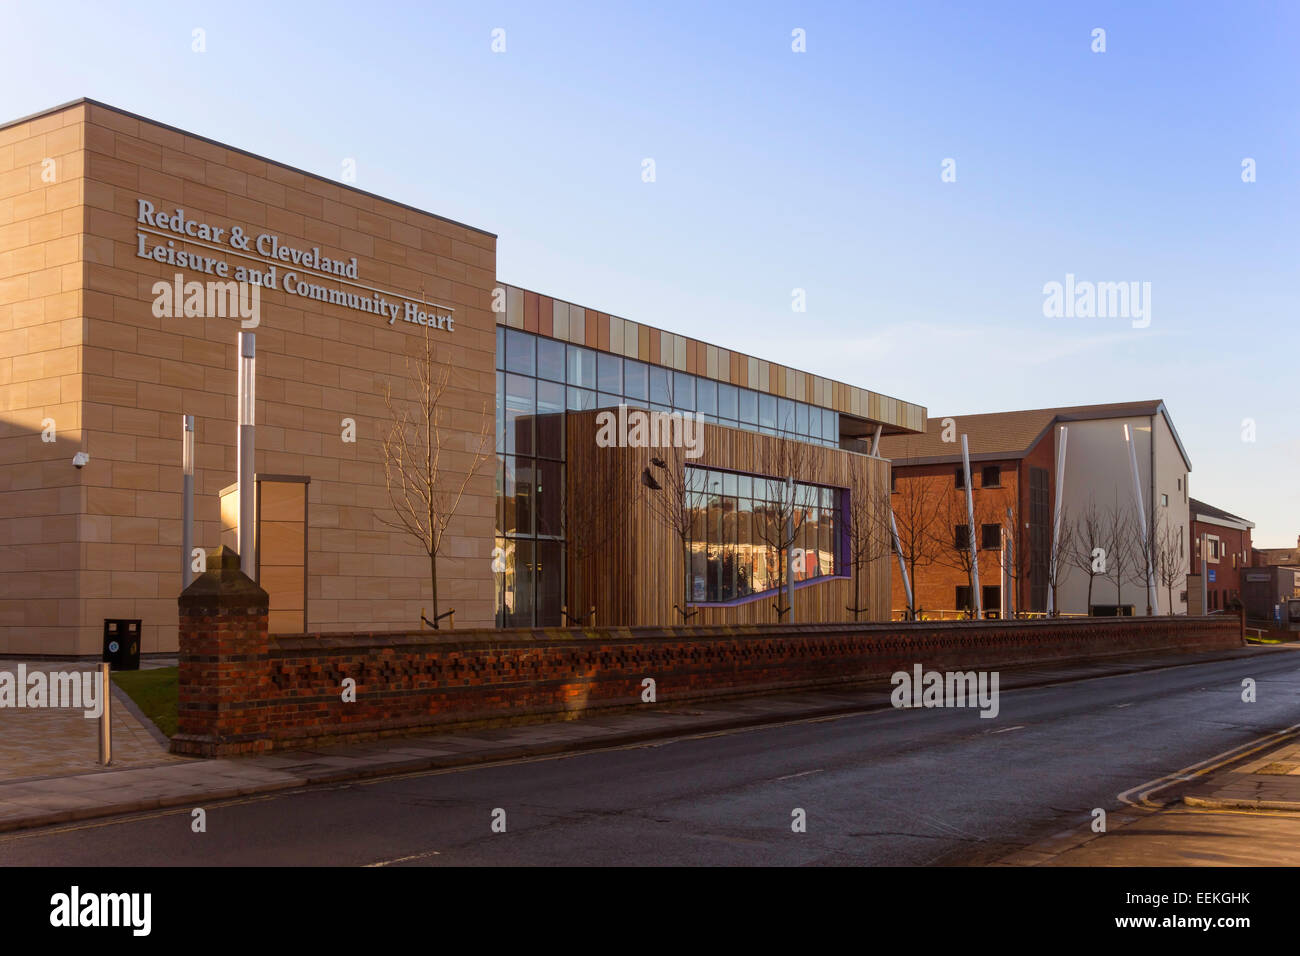 Redcar and Cleveland local authority Leisure and Community Heart building built 2013 - Stock Image